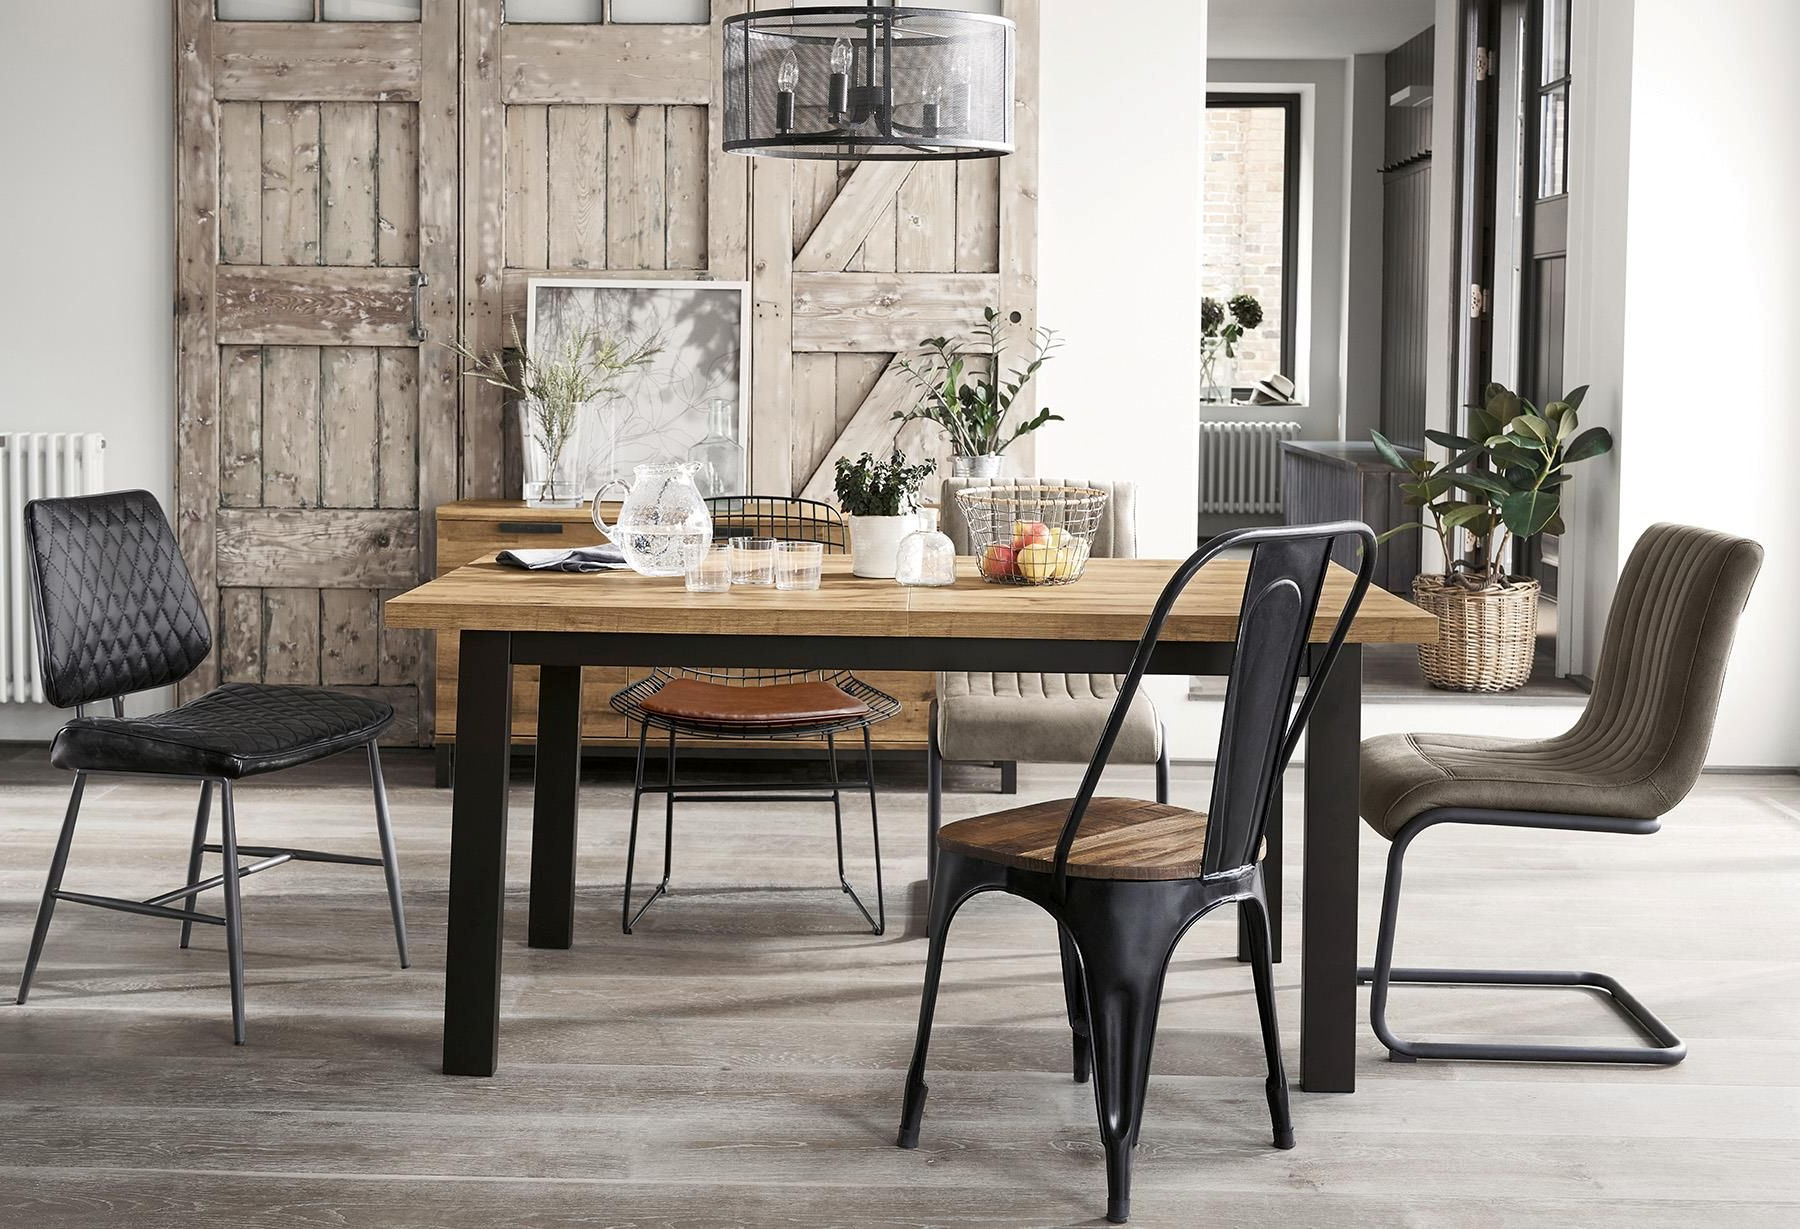 Widely Used 8 Seater Wood Contemporary Dining Tables With Extension Leaf Within Buy Bronx 6 8 Seater Extending Dining Table From The Next Uk (View 25 of 25)